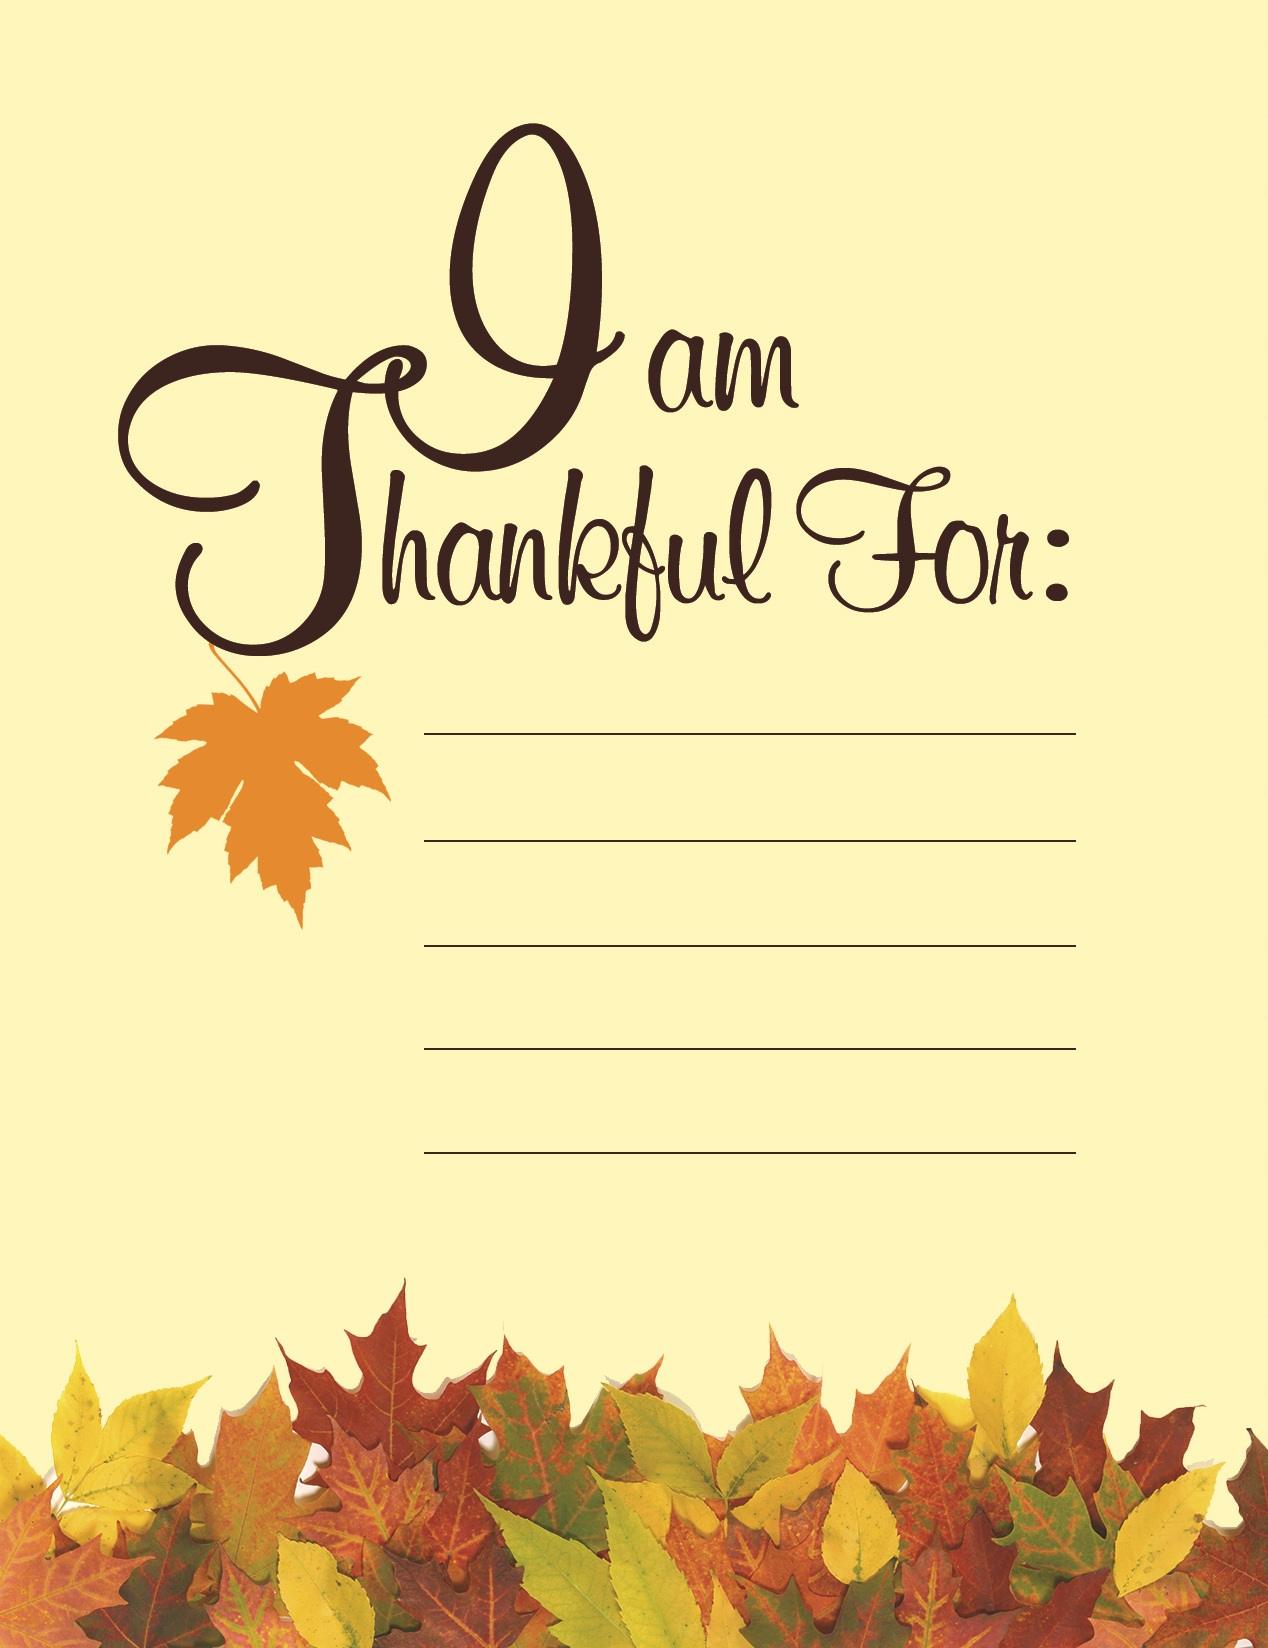 Gratitude This Thanksgiving | American Greetings Blog - Free Printable Thanksgiving Cards